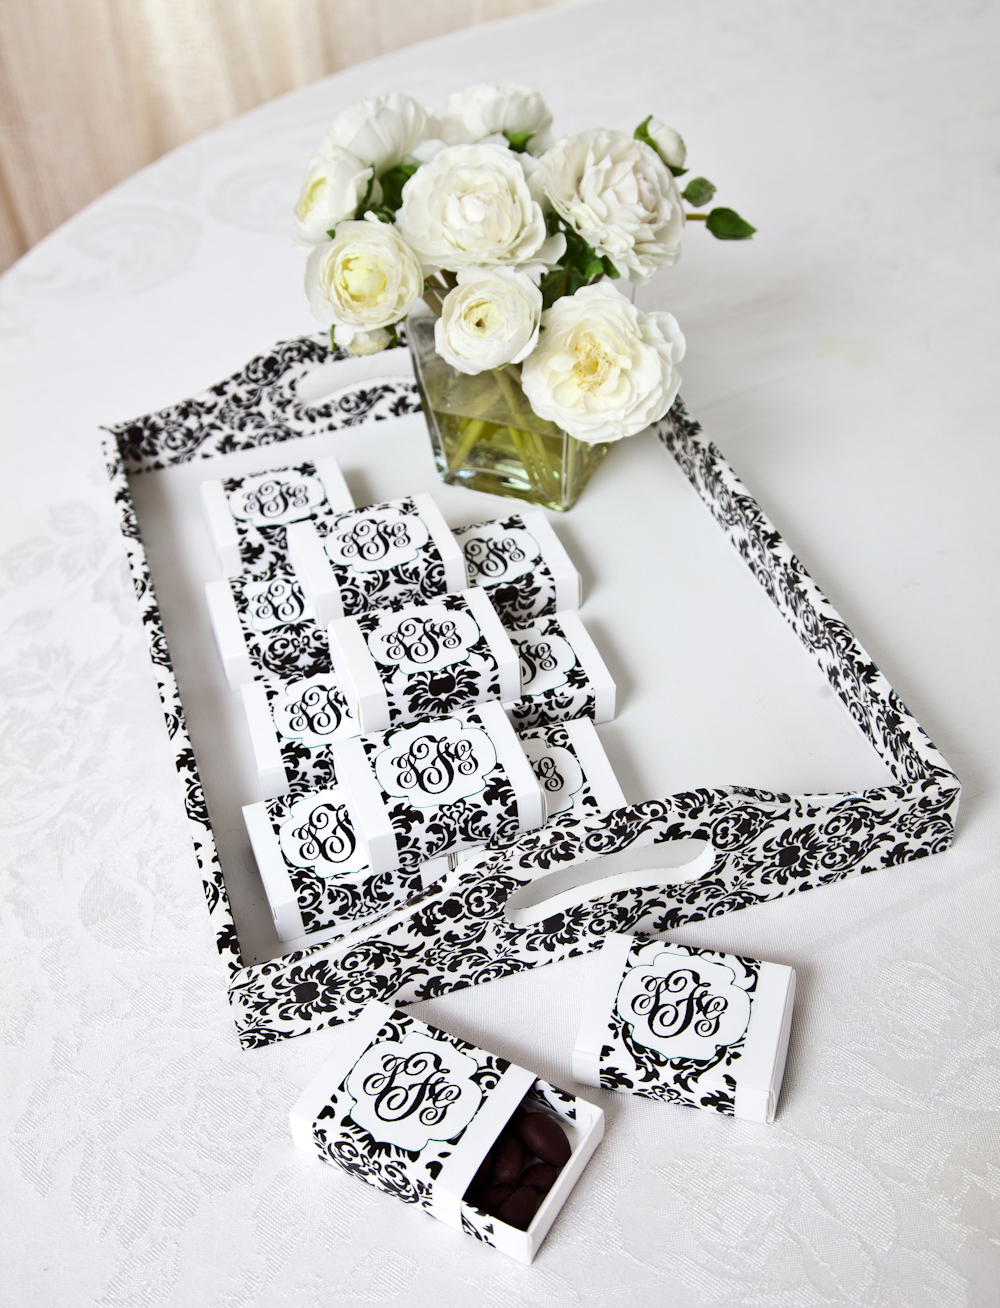 the Black Damask wedding